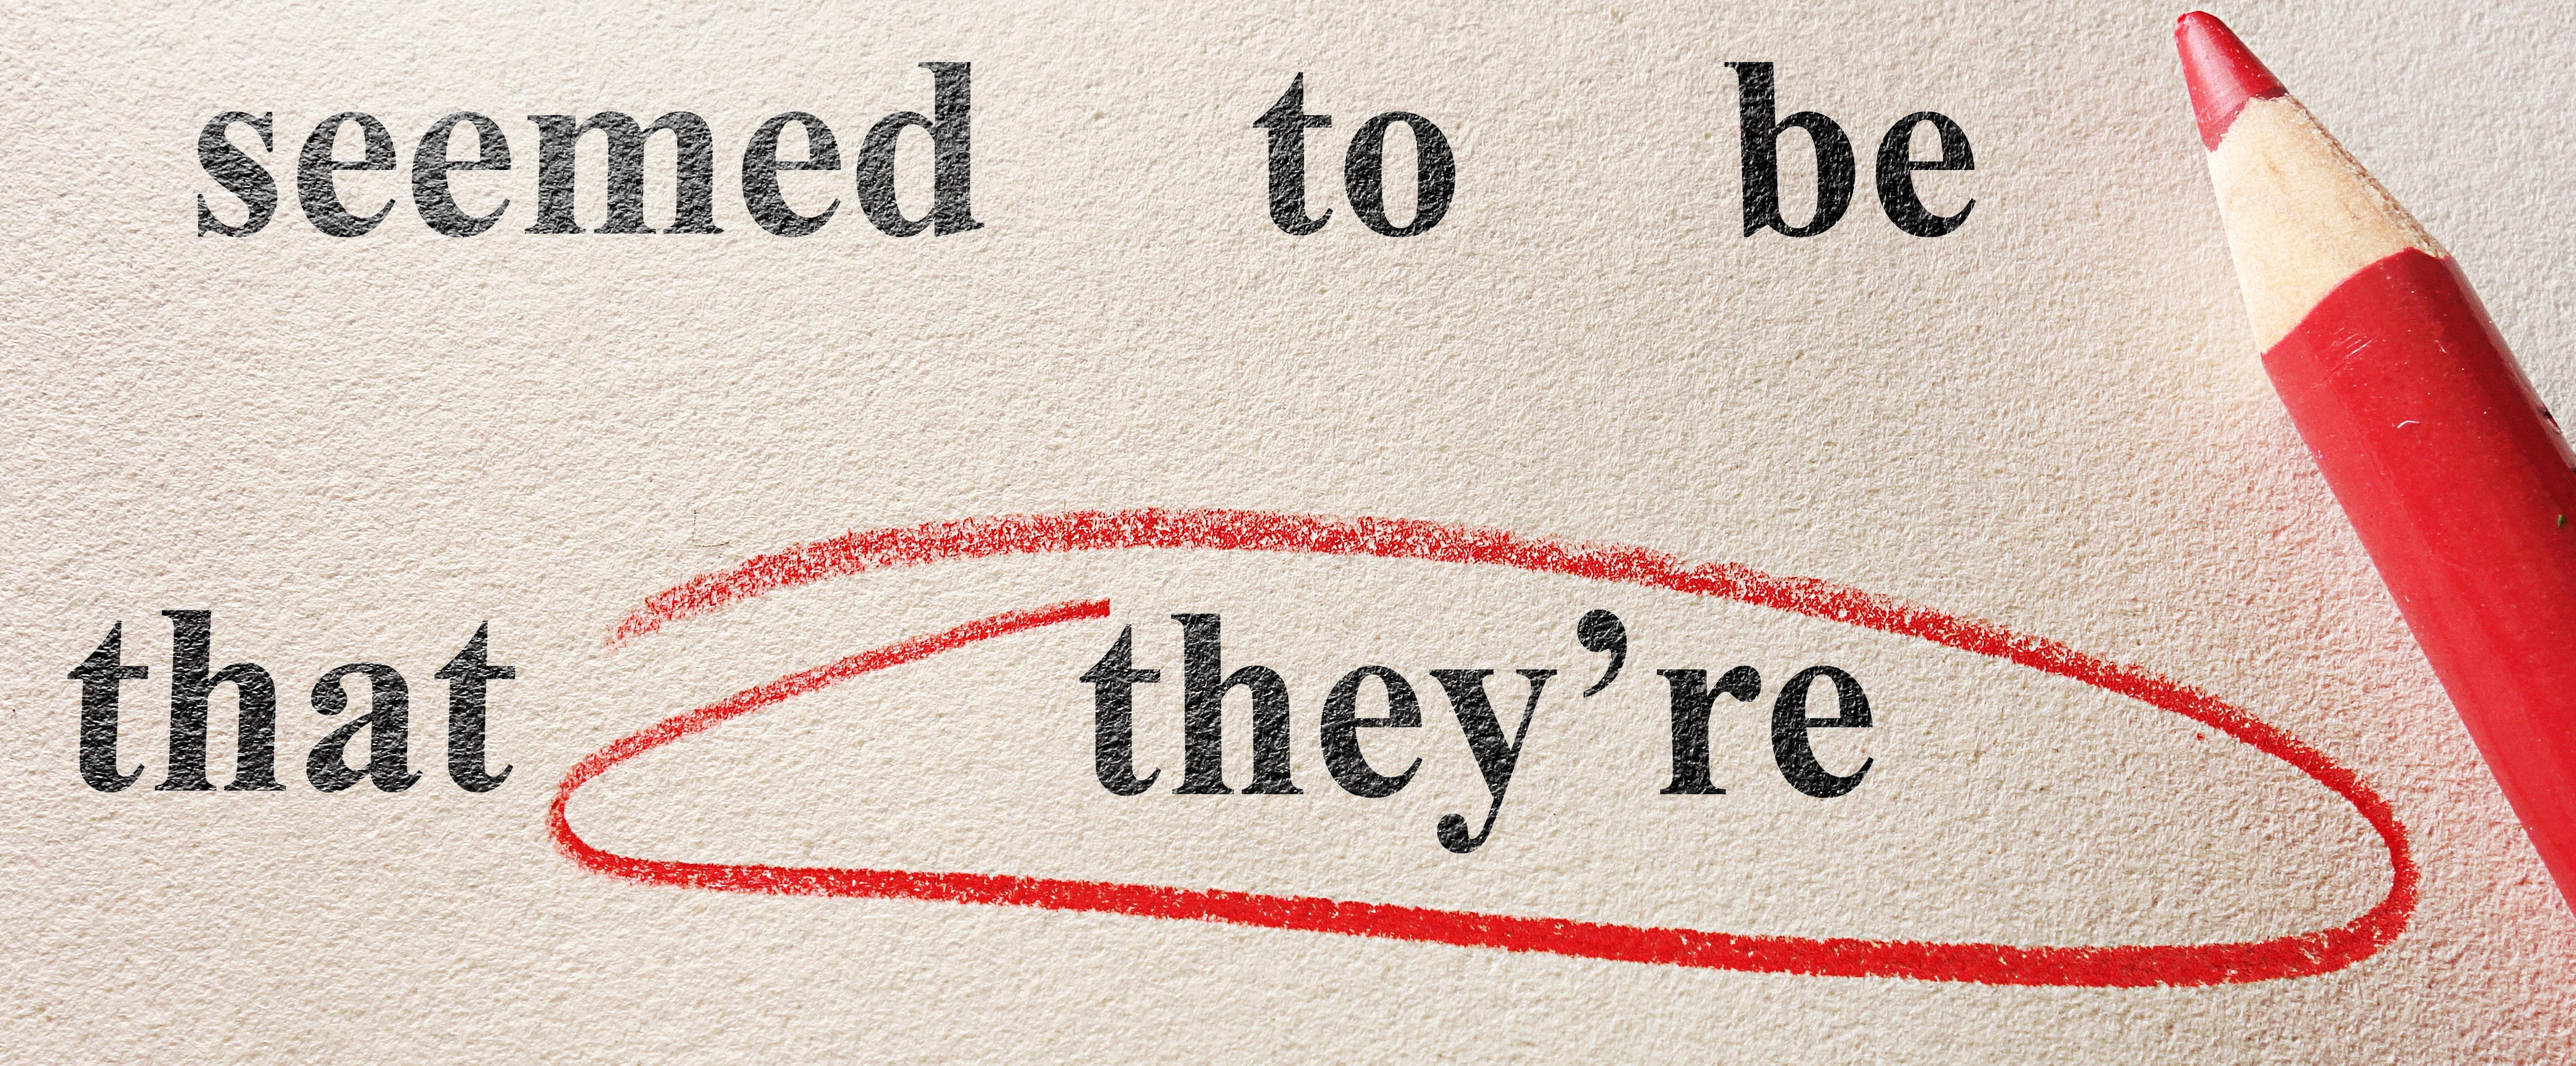 Grammar Police 30 Of The Most Common Grammatical Errors We All Need